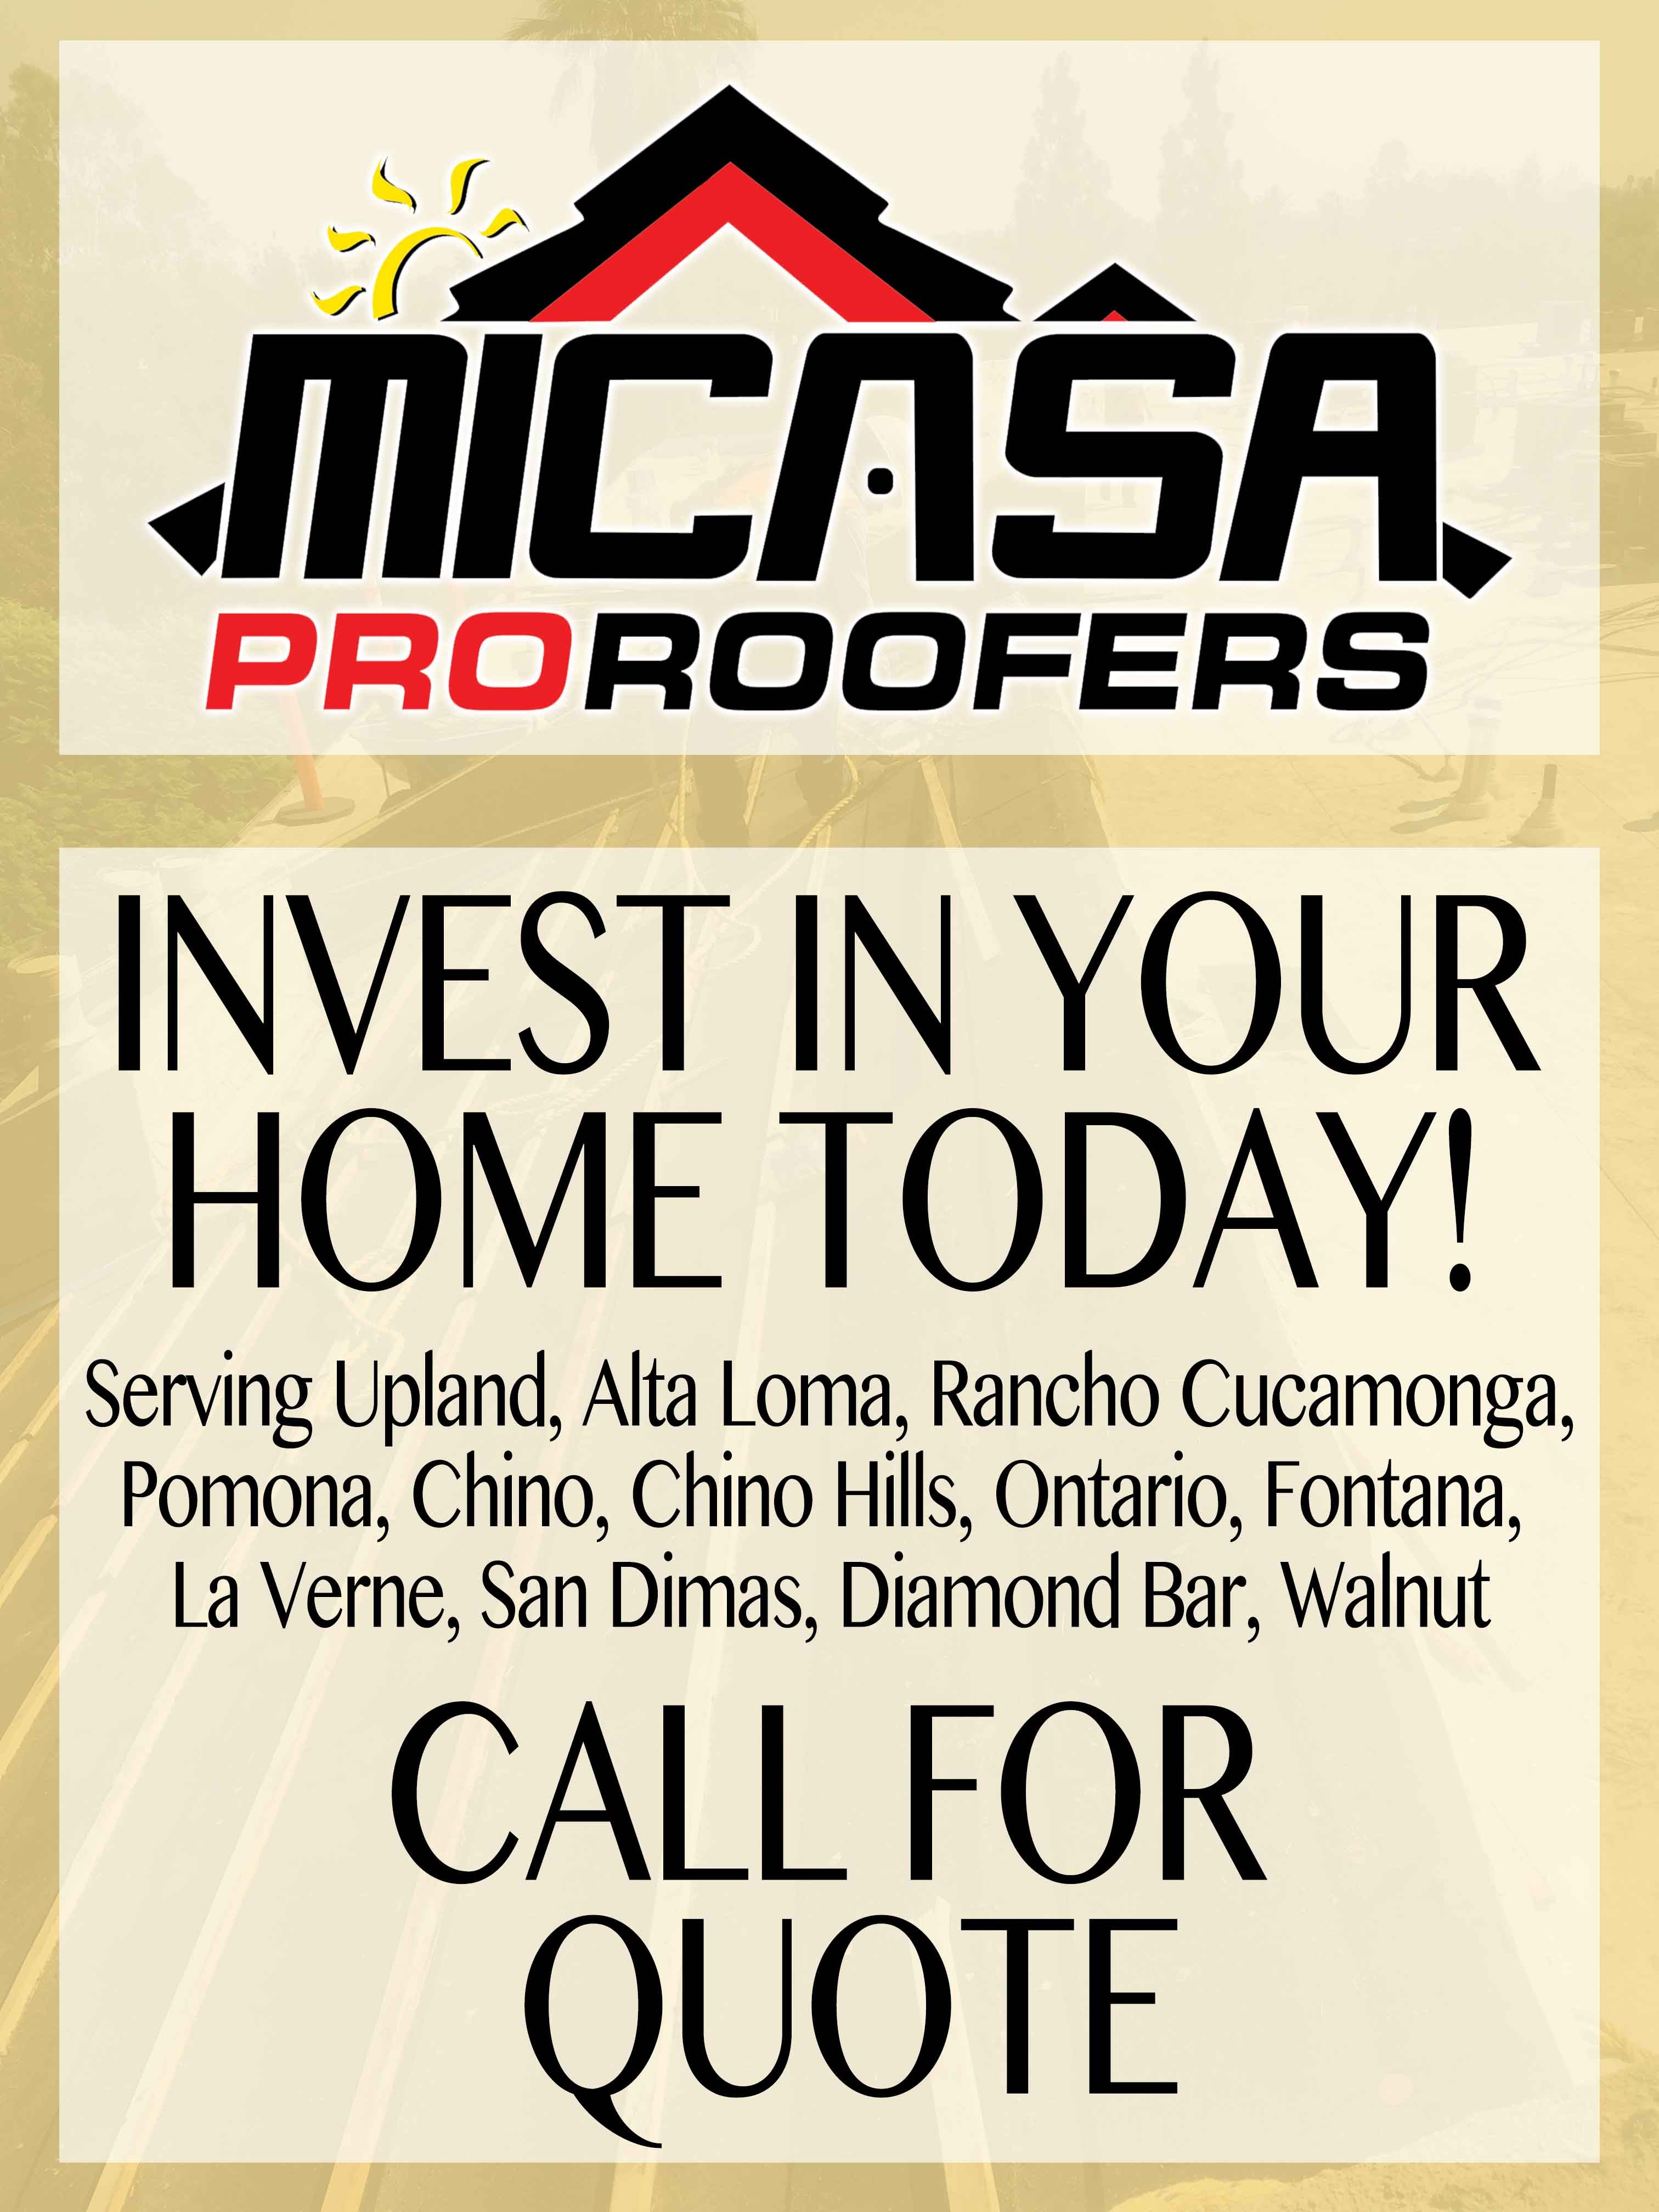 Pin by Micasa Roofing on Micasa Pro Roofers Work Photos